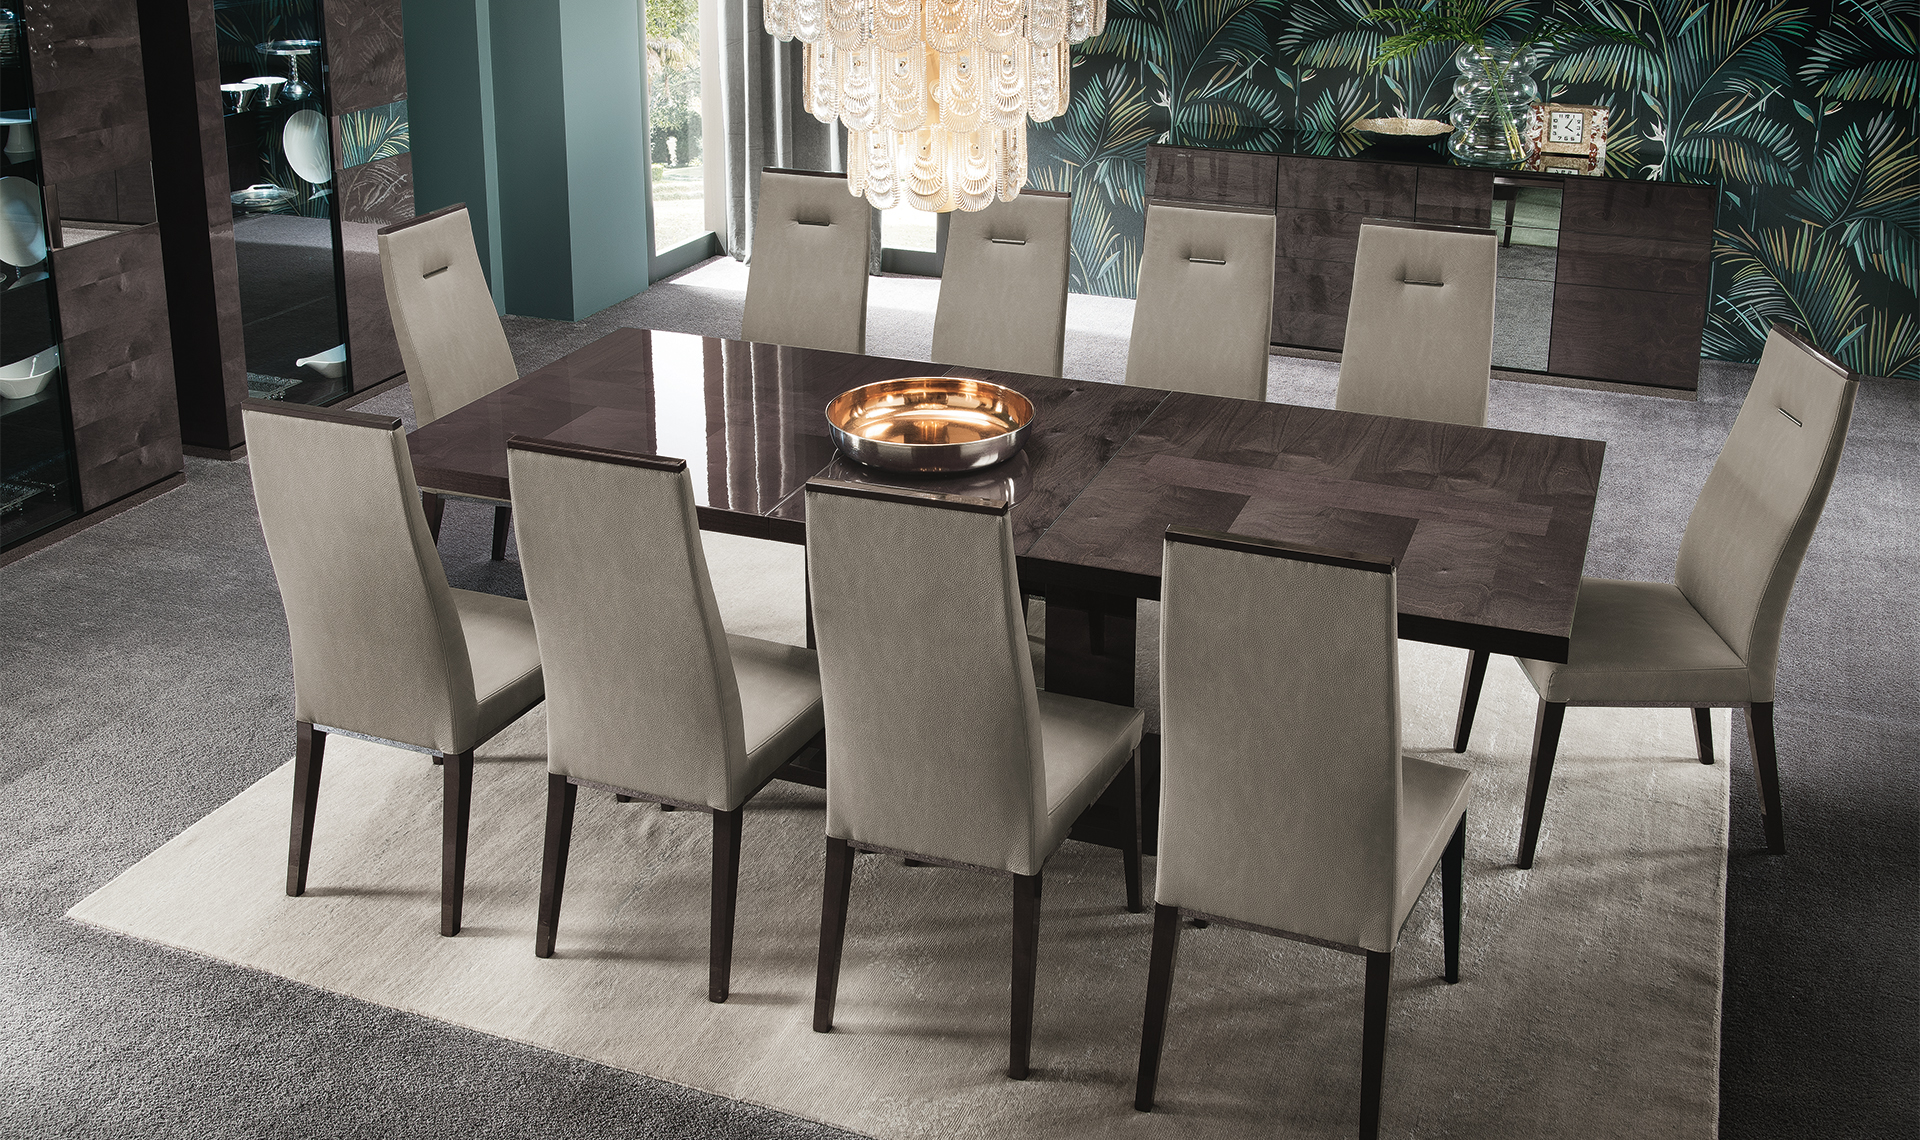 Heritage Dining Room Table Overview